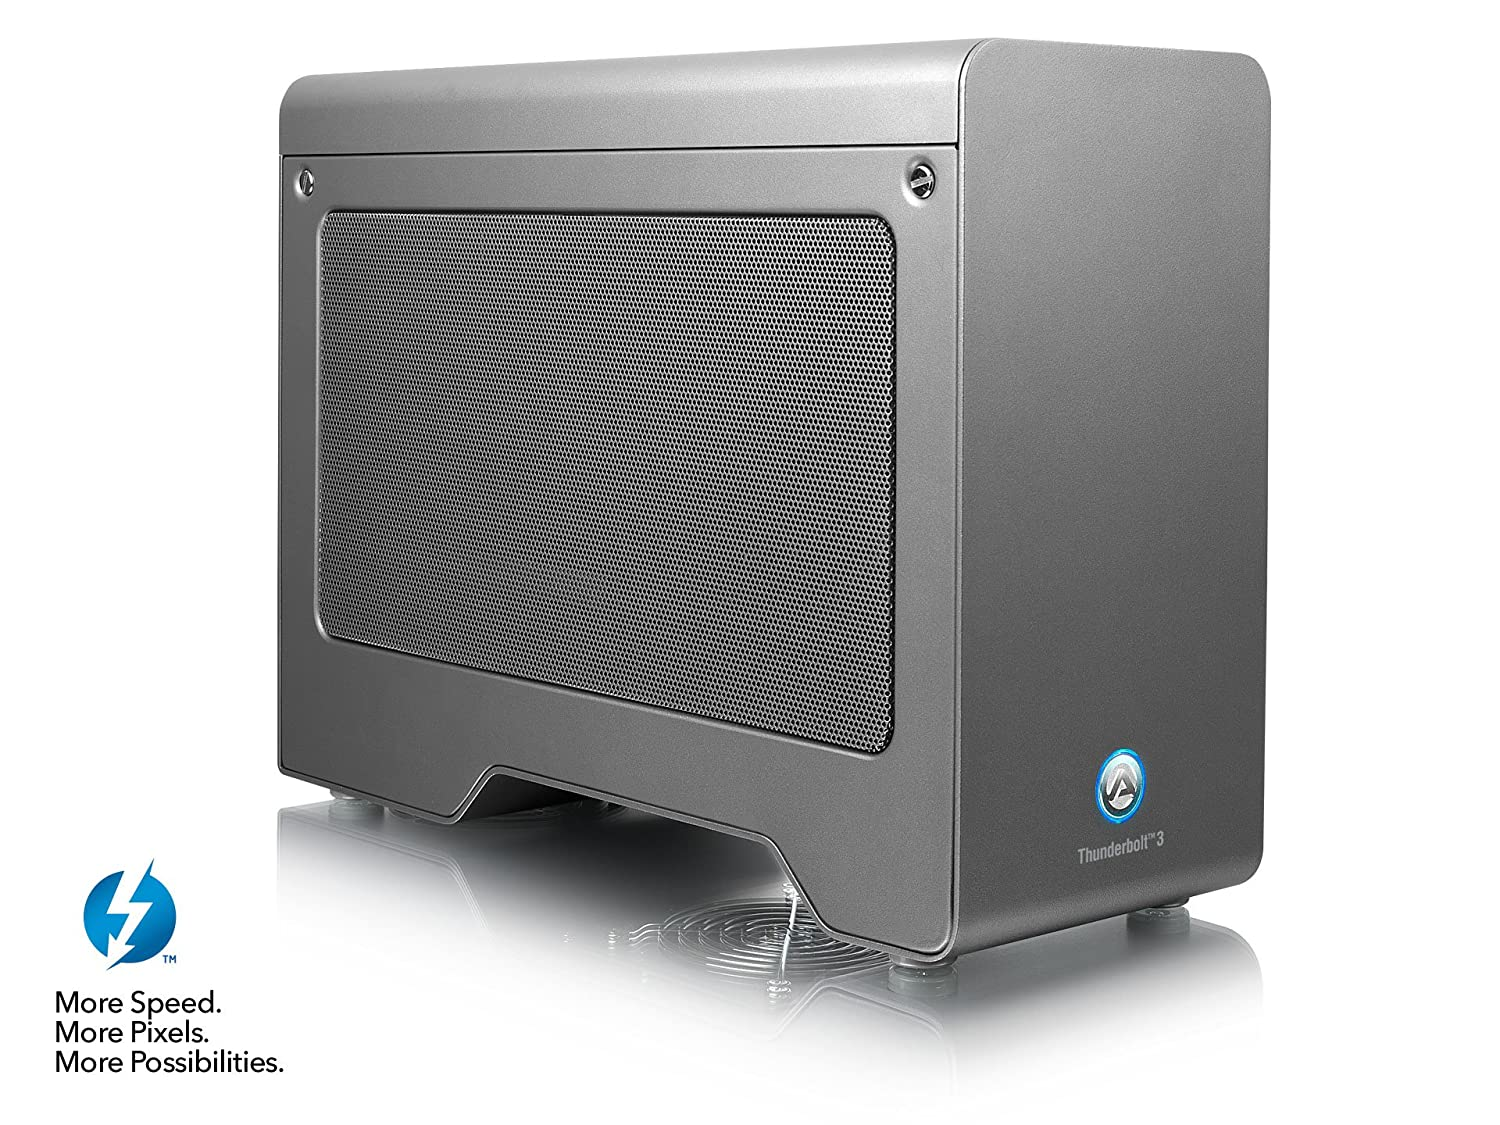 AKiTiO Node Pro Thunderbolt 3 PCIe External GPU Enclosure PC/MAC